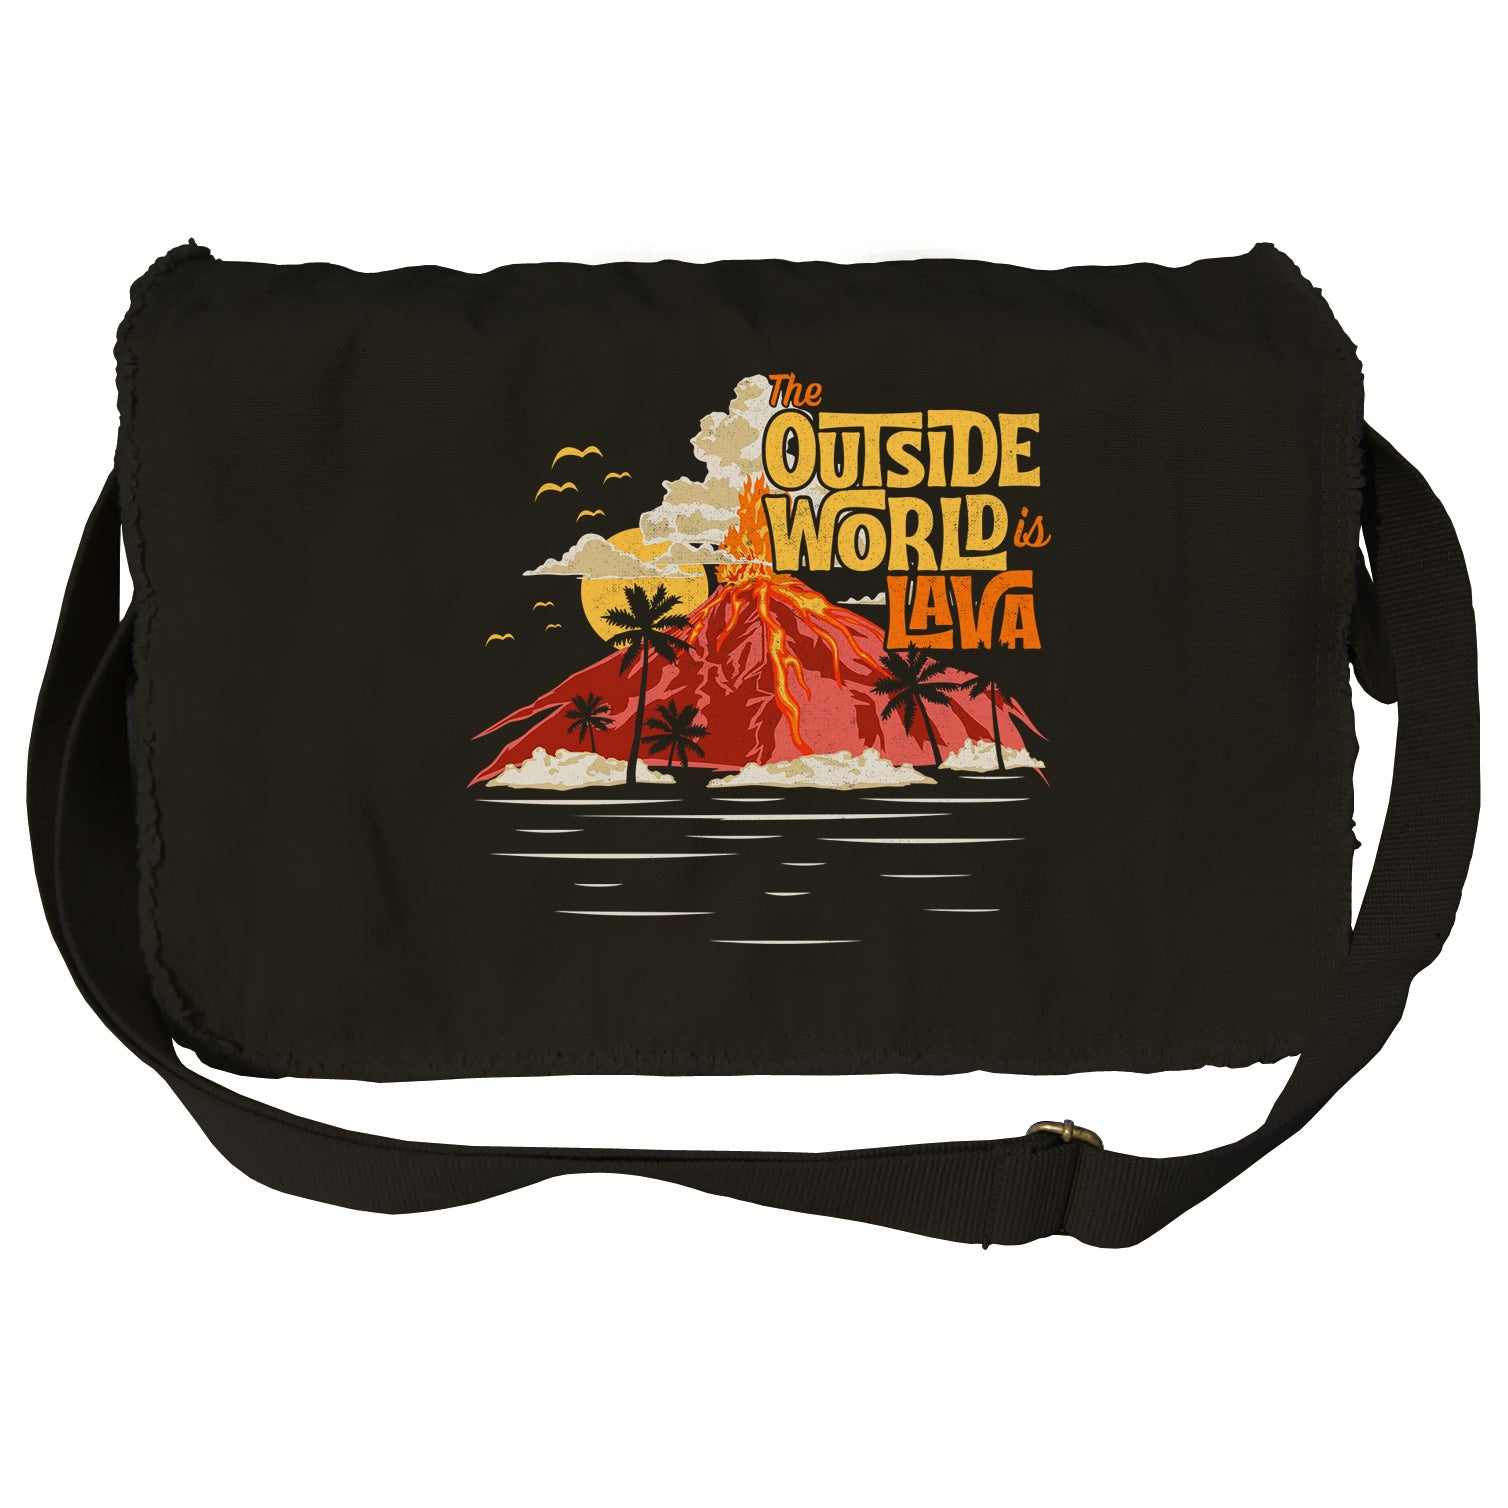 The Outside World is Lava Messenger Bag